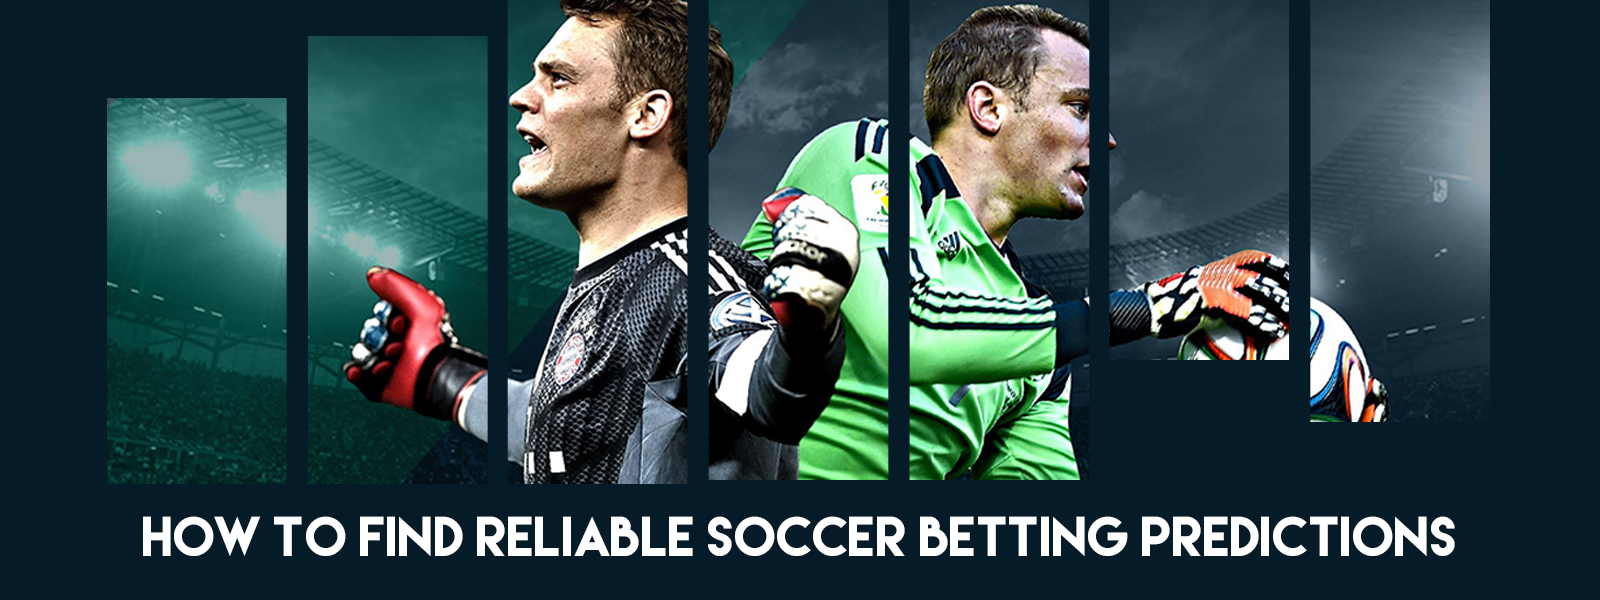 How to Find Reliable Soccer Betting Predictions